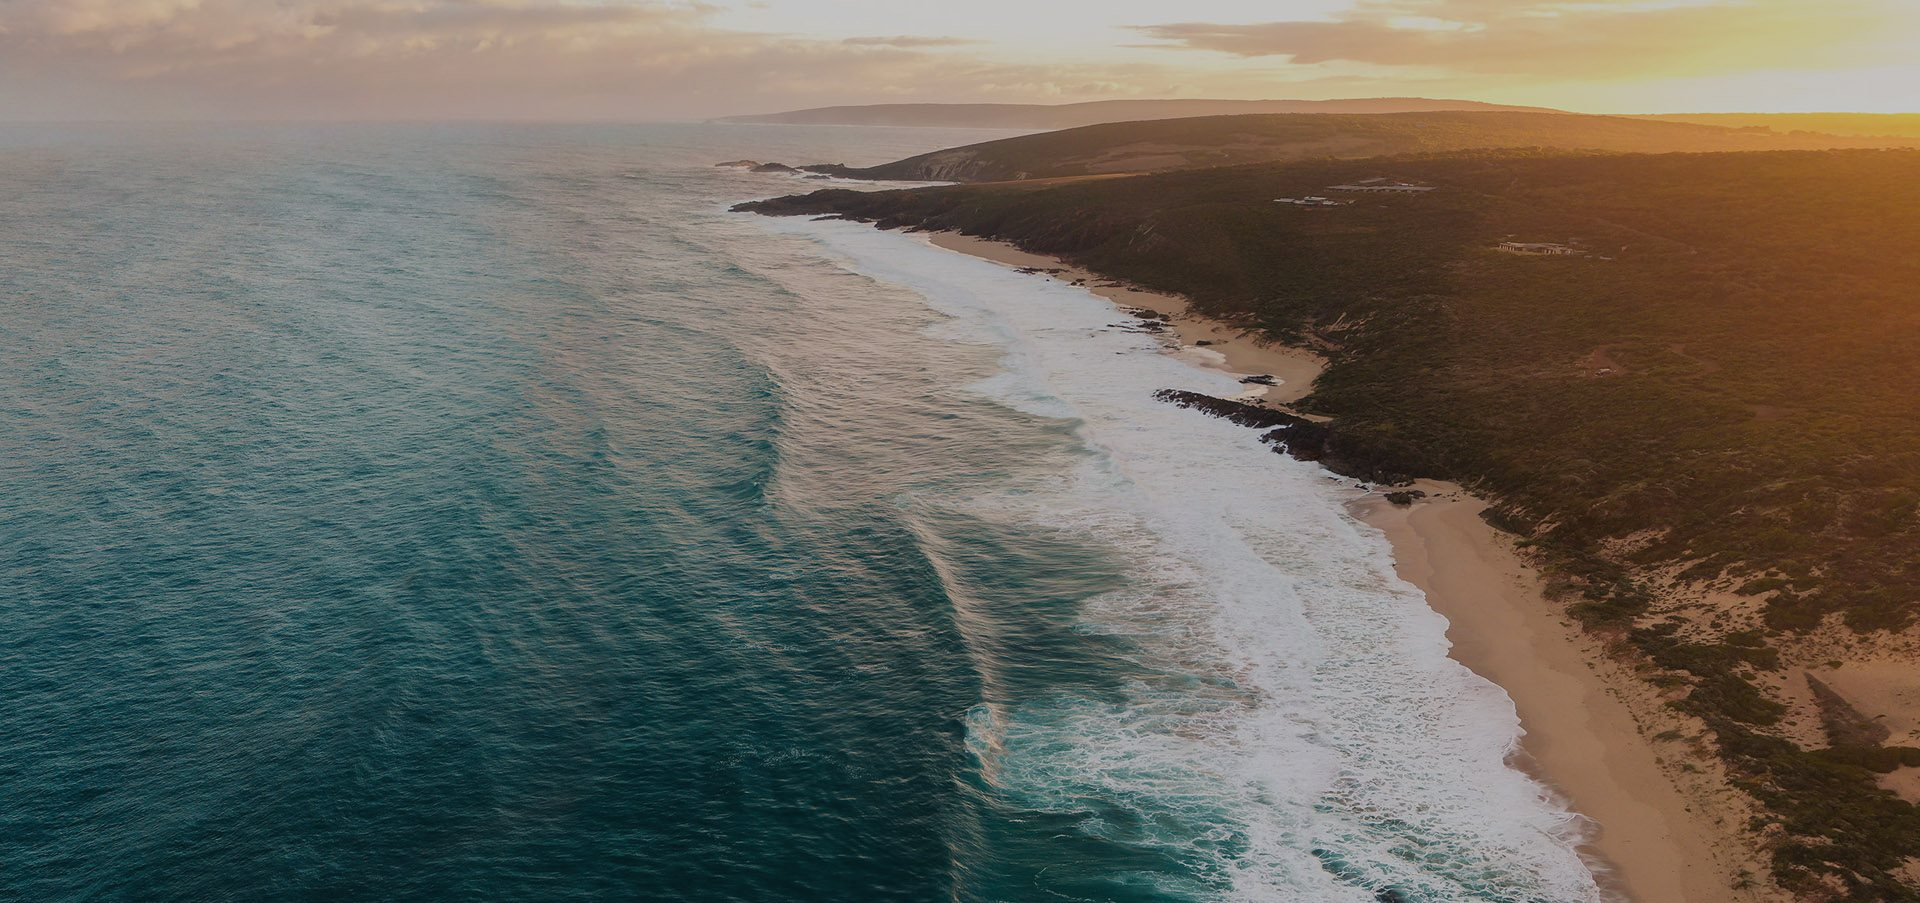 WA Coast by Photo by Tristan McKenzie on Unsplash | Mankind Project